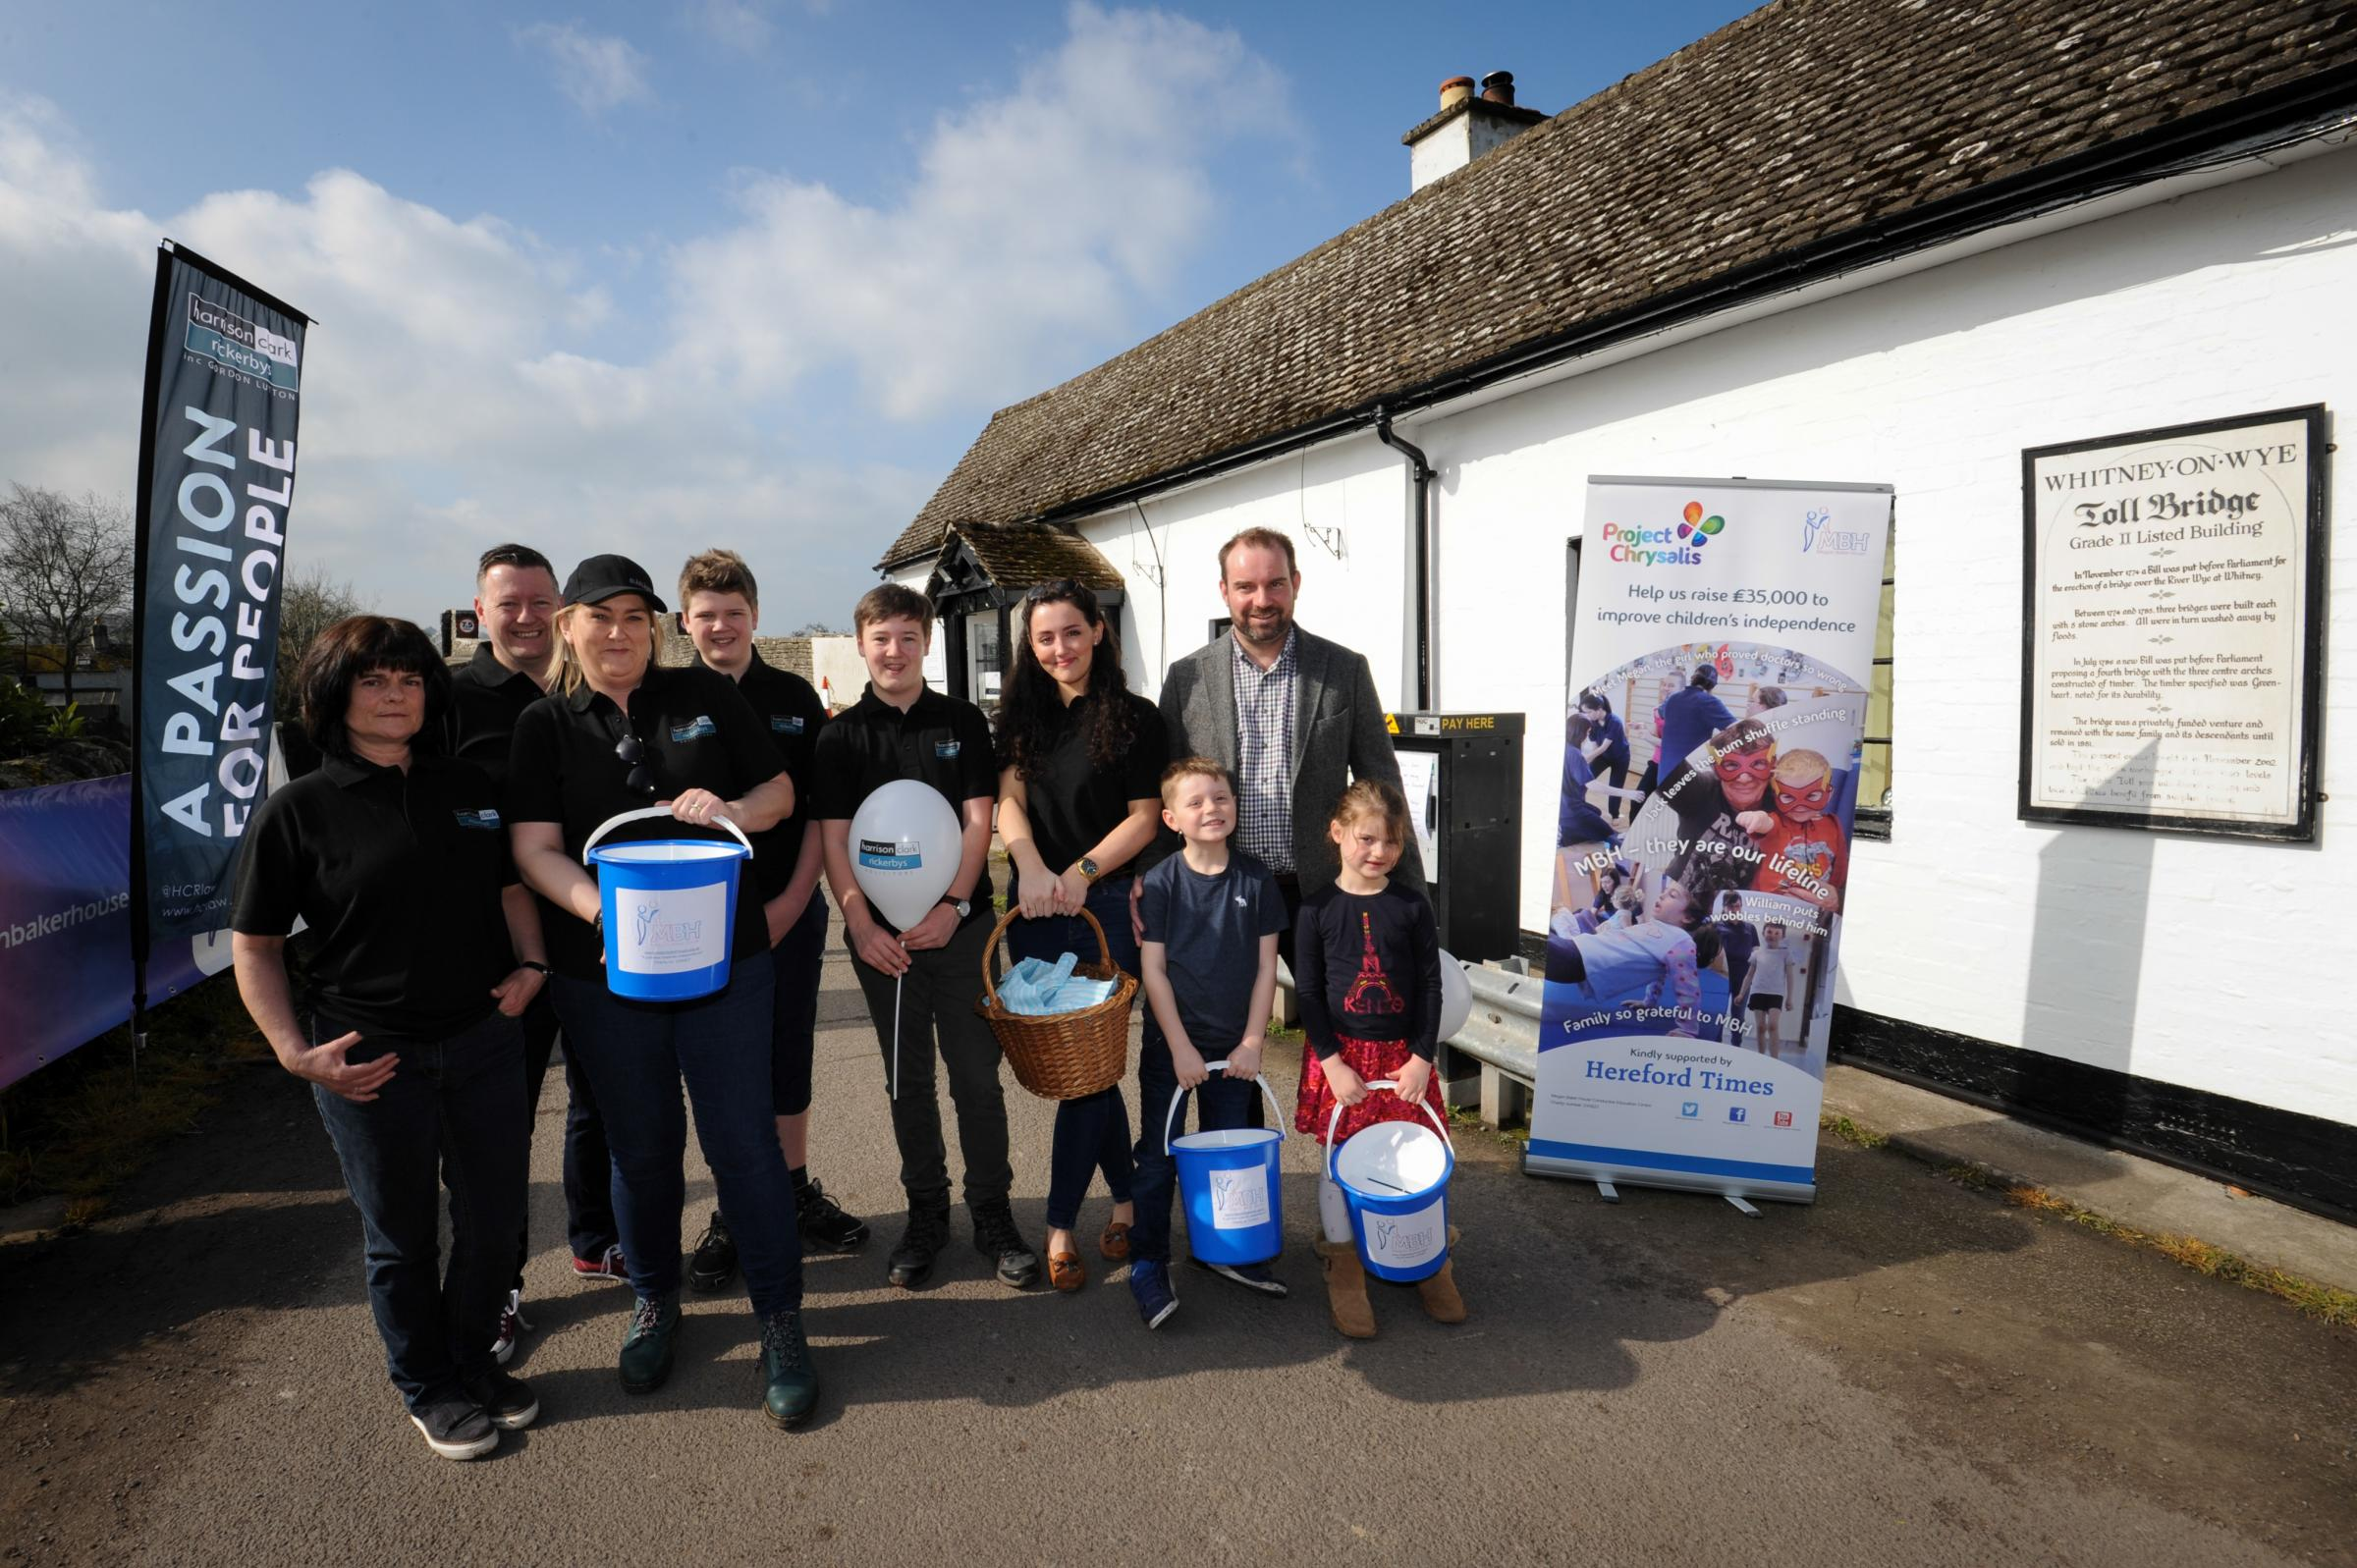 The Harrison Clerk Rickerby team takes control of Whitney on Wye toll bridge for a day to raise money for Megan Baker House. from left: Emma Jennings, Andrew Cooper, Jacob Cooper, William Cooper, Ellis Walby, Hugo Hayes, Matt Hayes, Jemima Hayes.